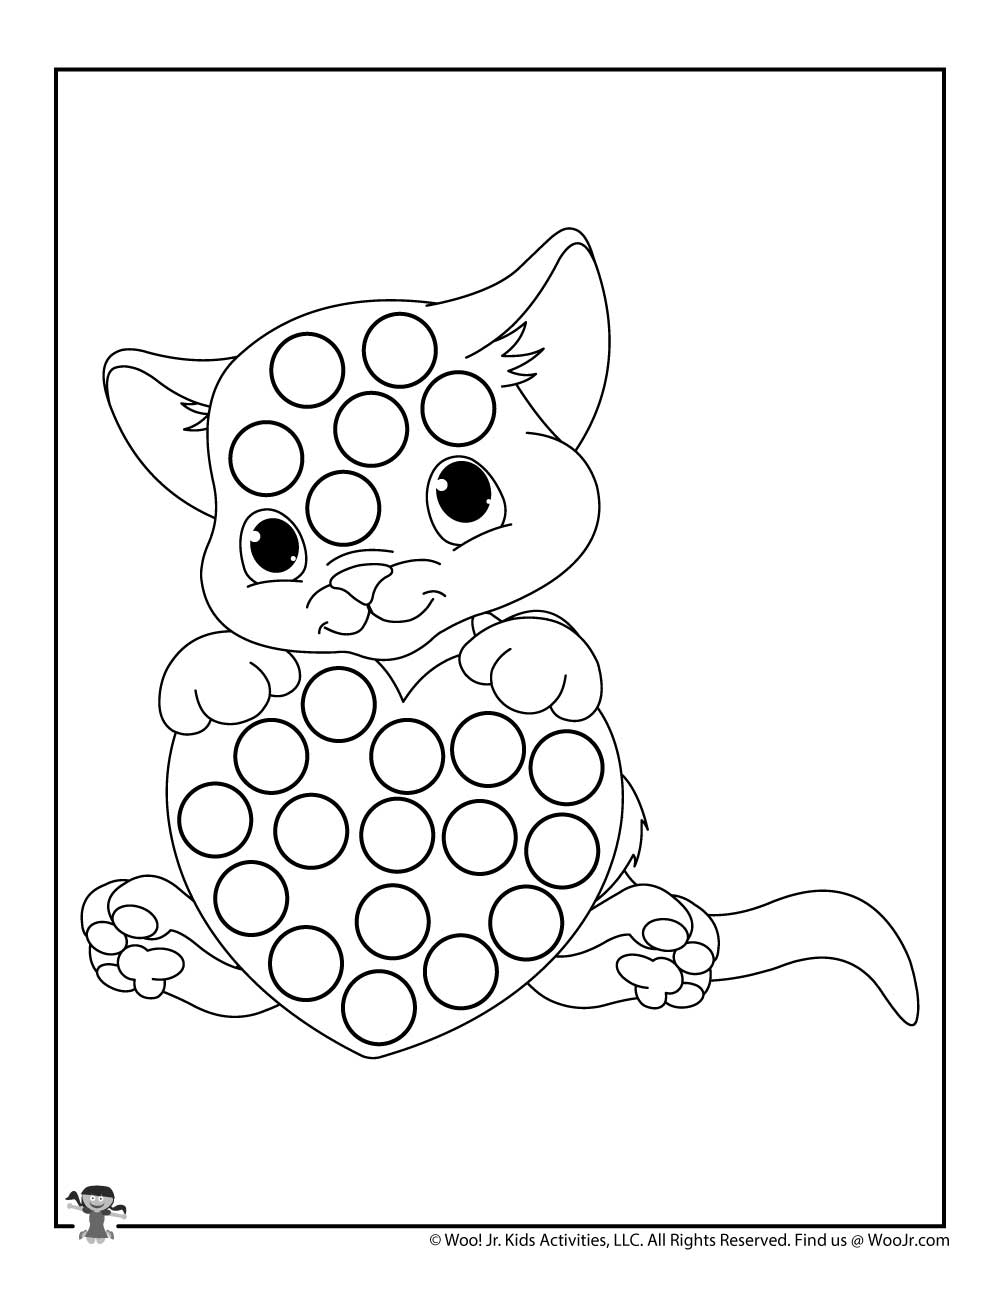 Cat Dot Marker Free Coloring Page Woo Jr Kids Activities In 2021 Dot Markers Coloring Pages Free Coloring Pages [ 1294 x 1000 Pixel ]